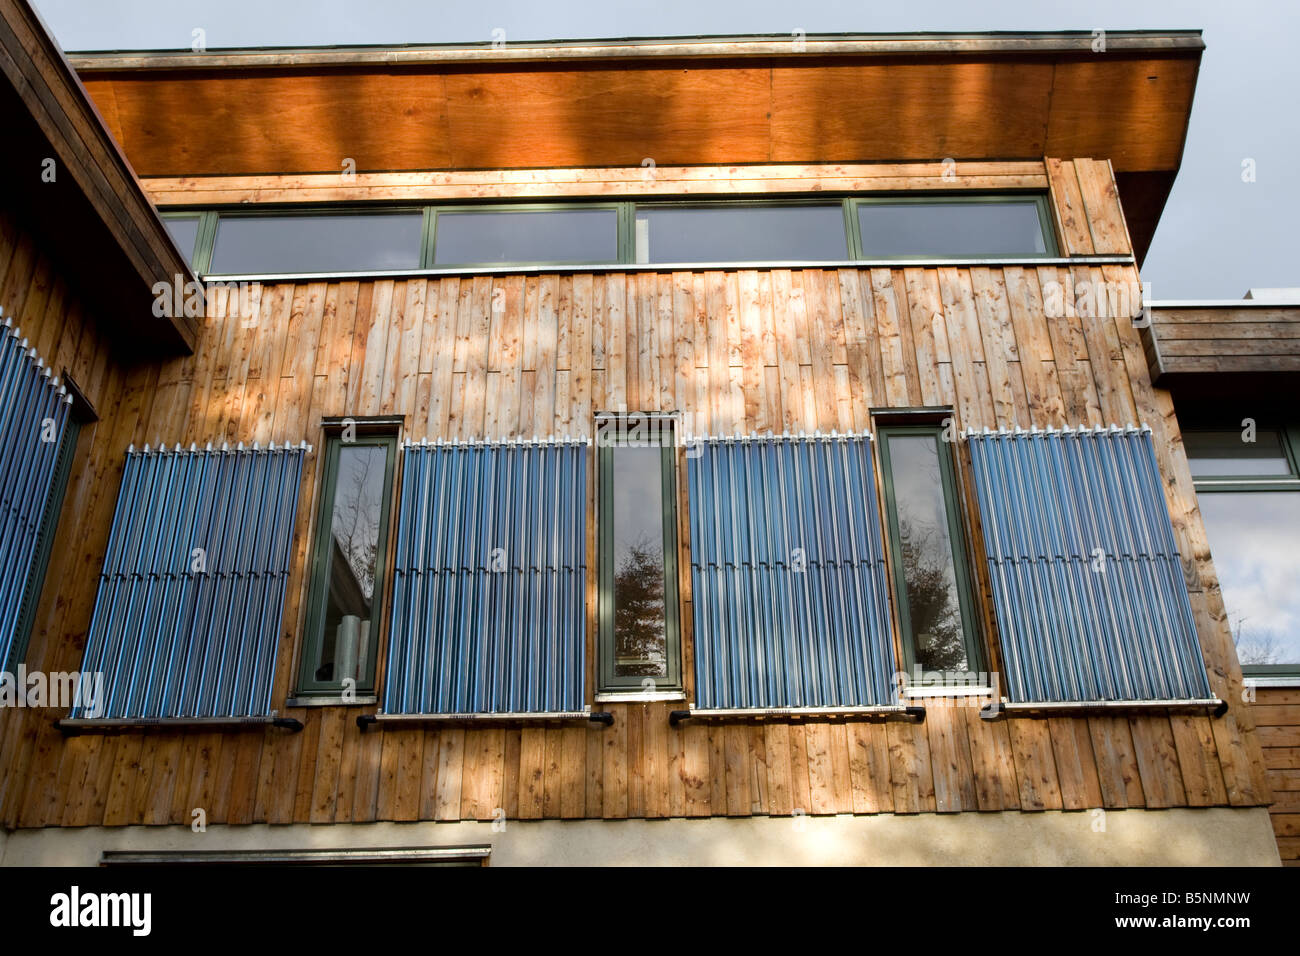 Vertically wall mounted solar thermal evacuated tubes The Green Shop Bisley Stroud UK - Stock Image